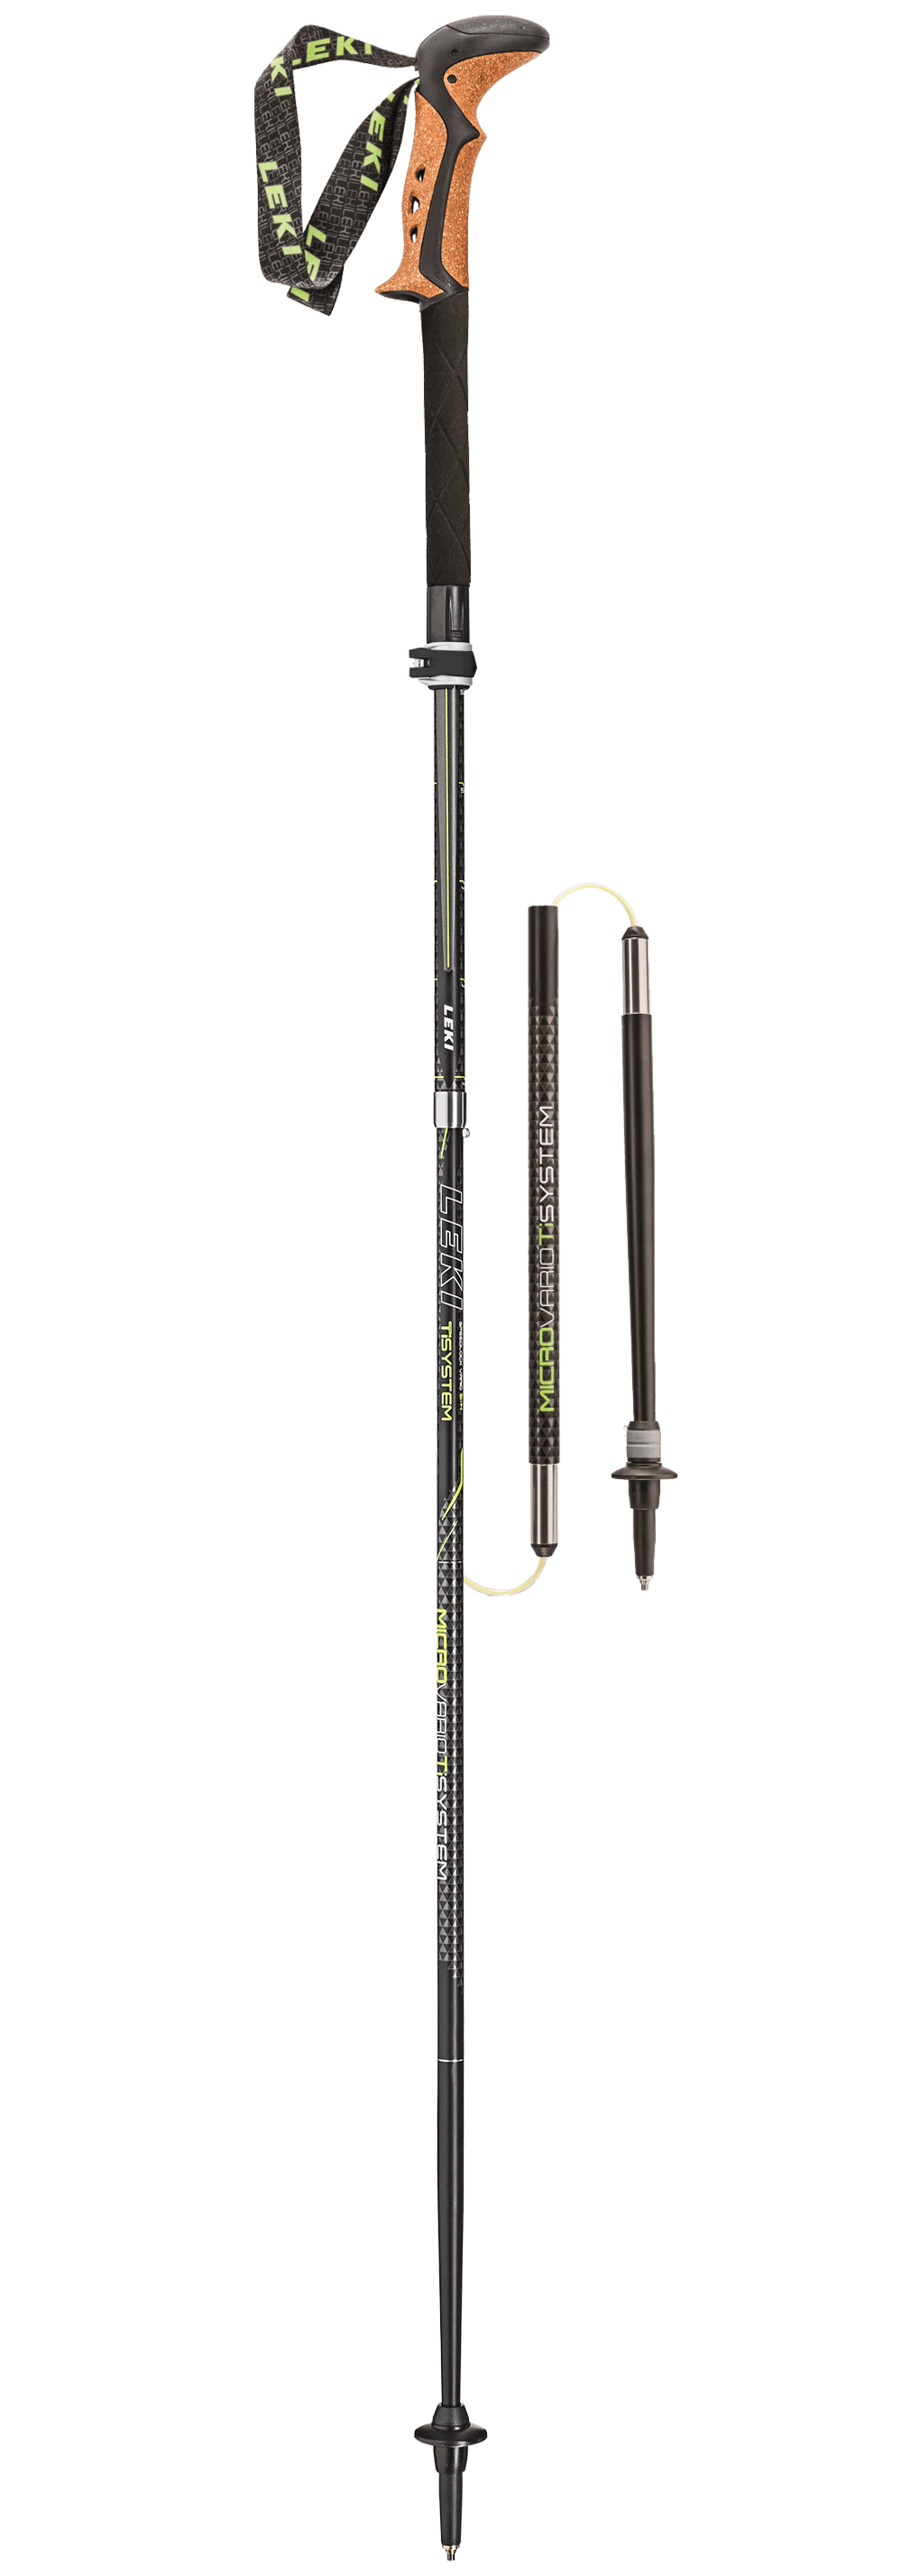 Leki Trekking Pole with shock absorbents